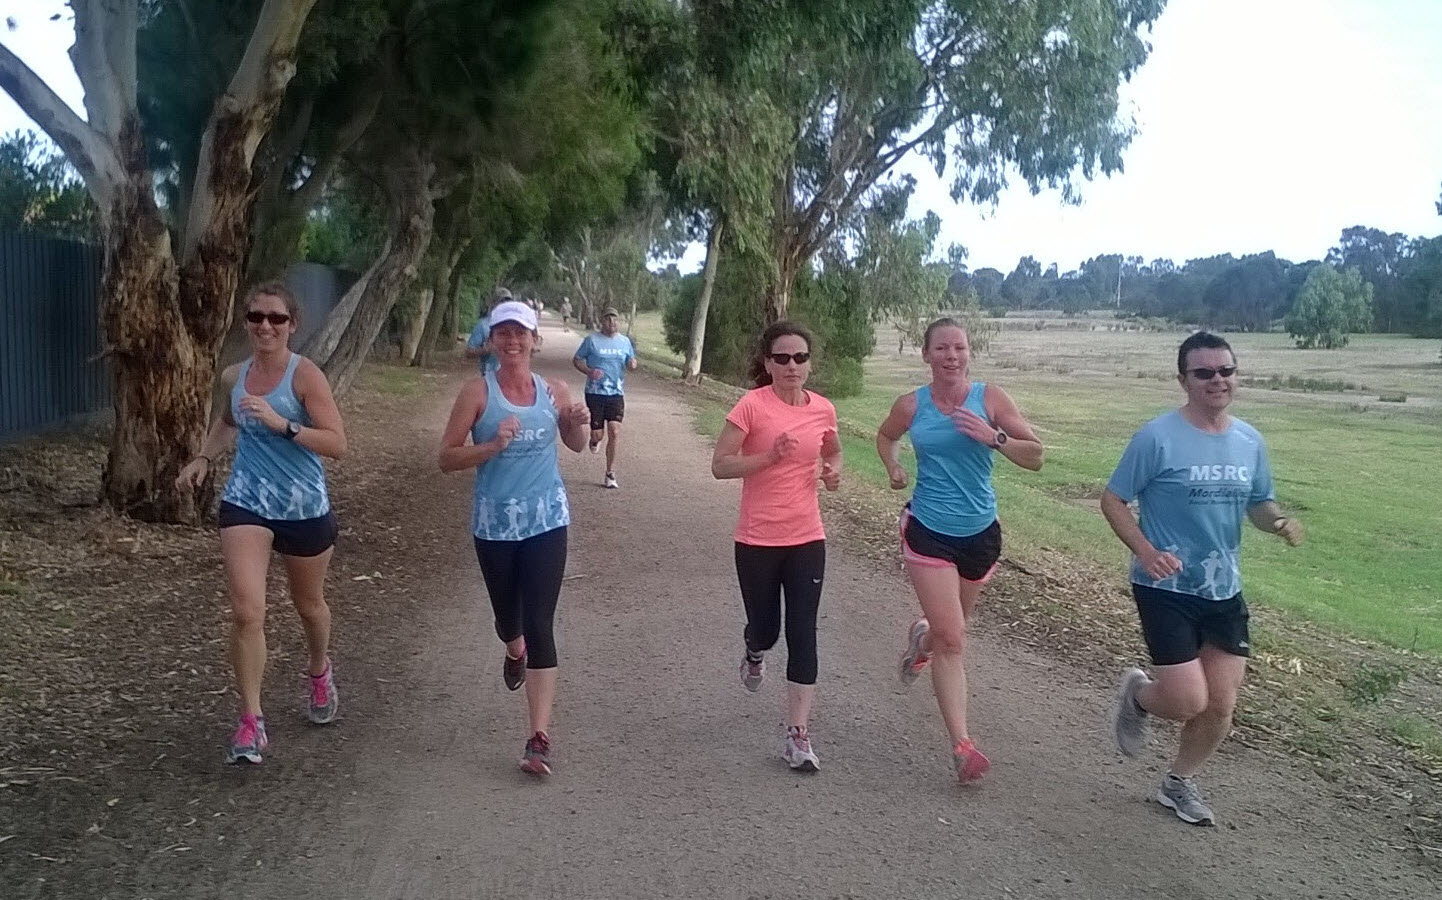 MSRC Weekly Run Group running the long Beach trail at Mordialloc